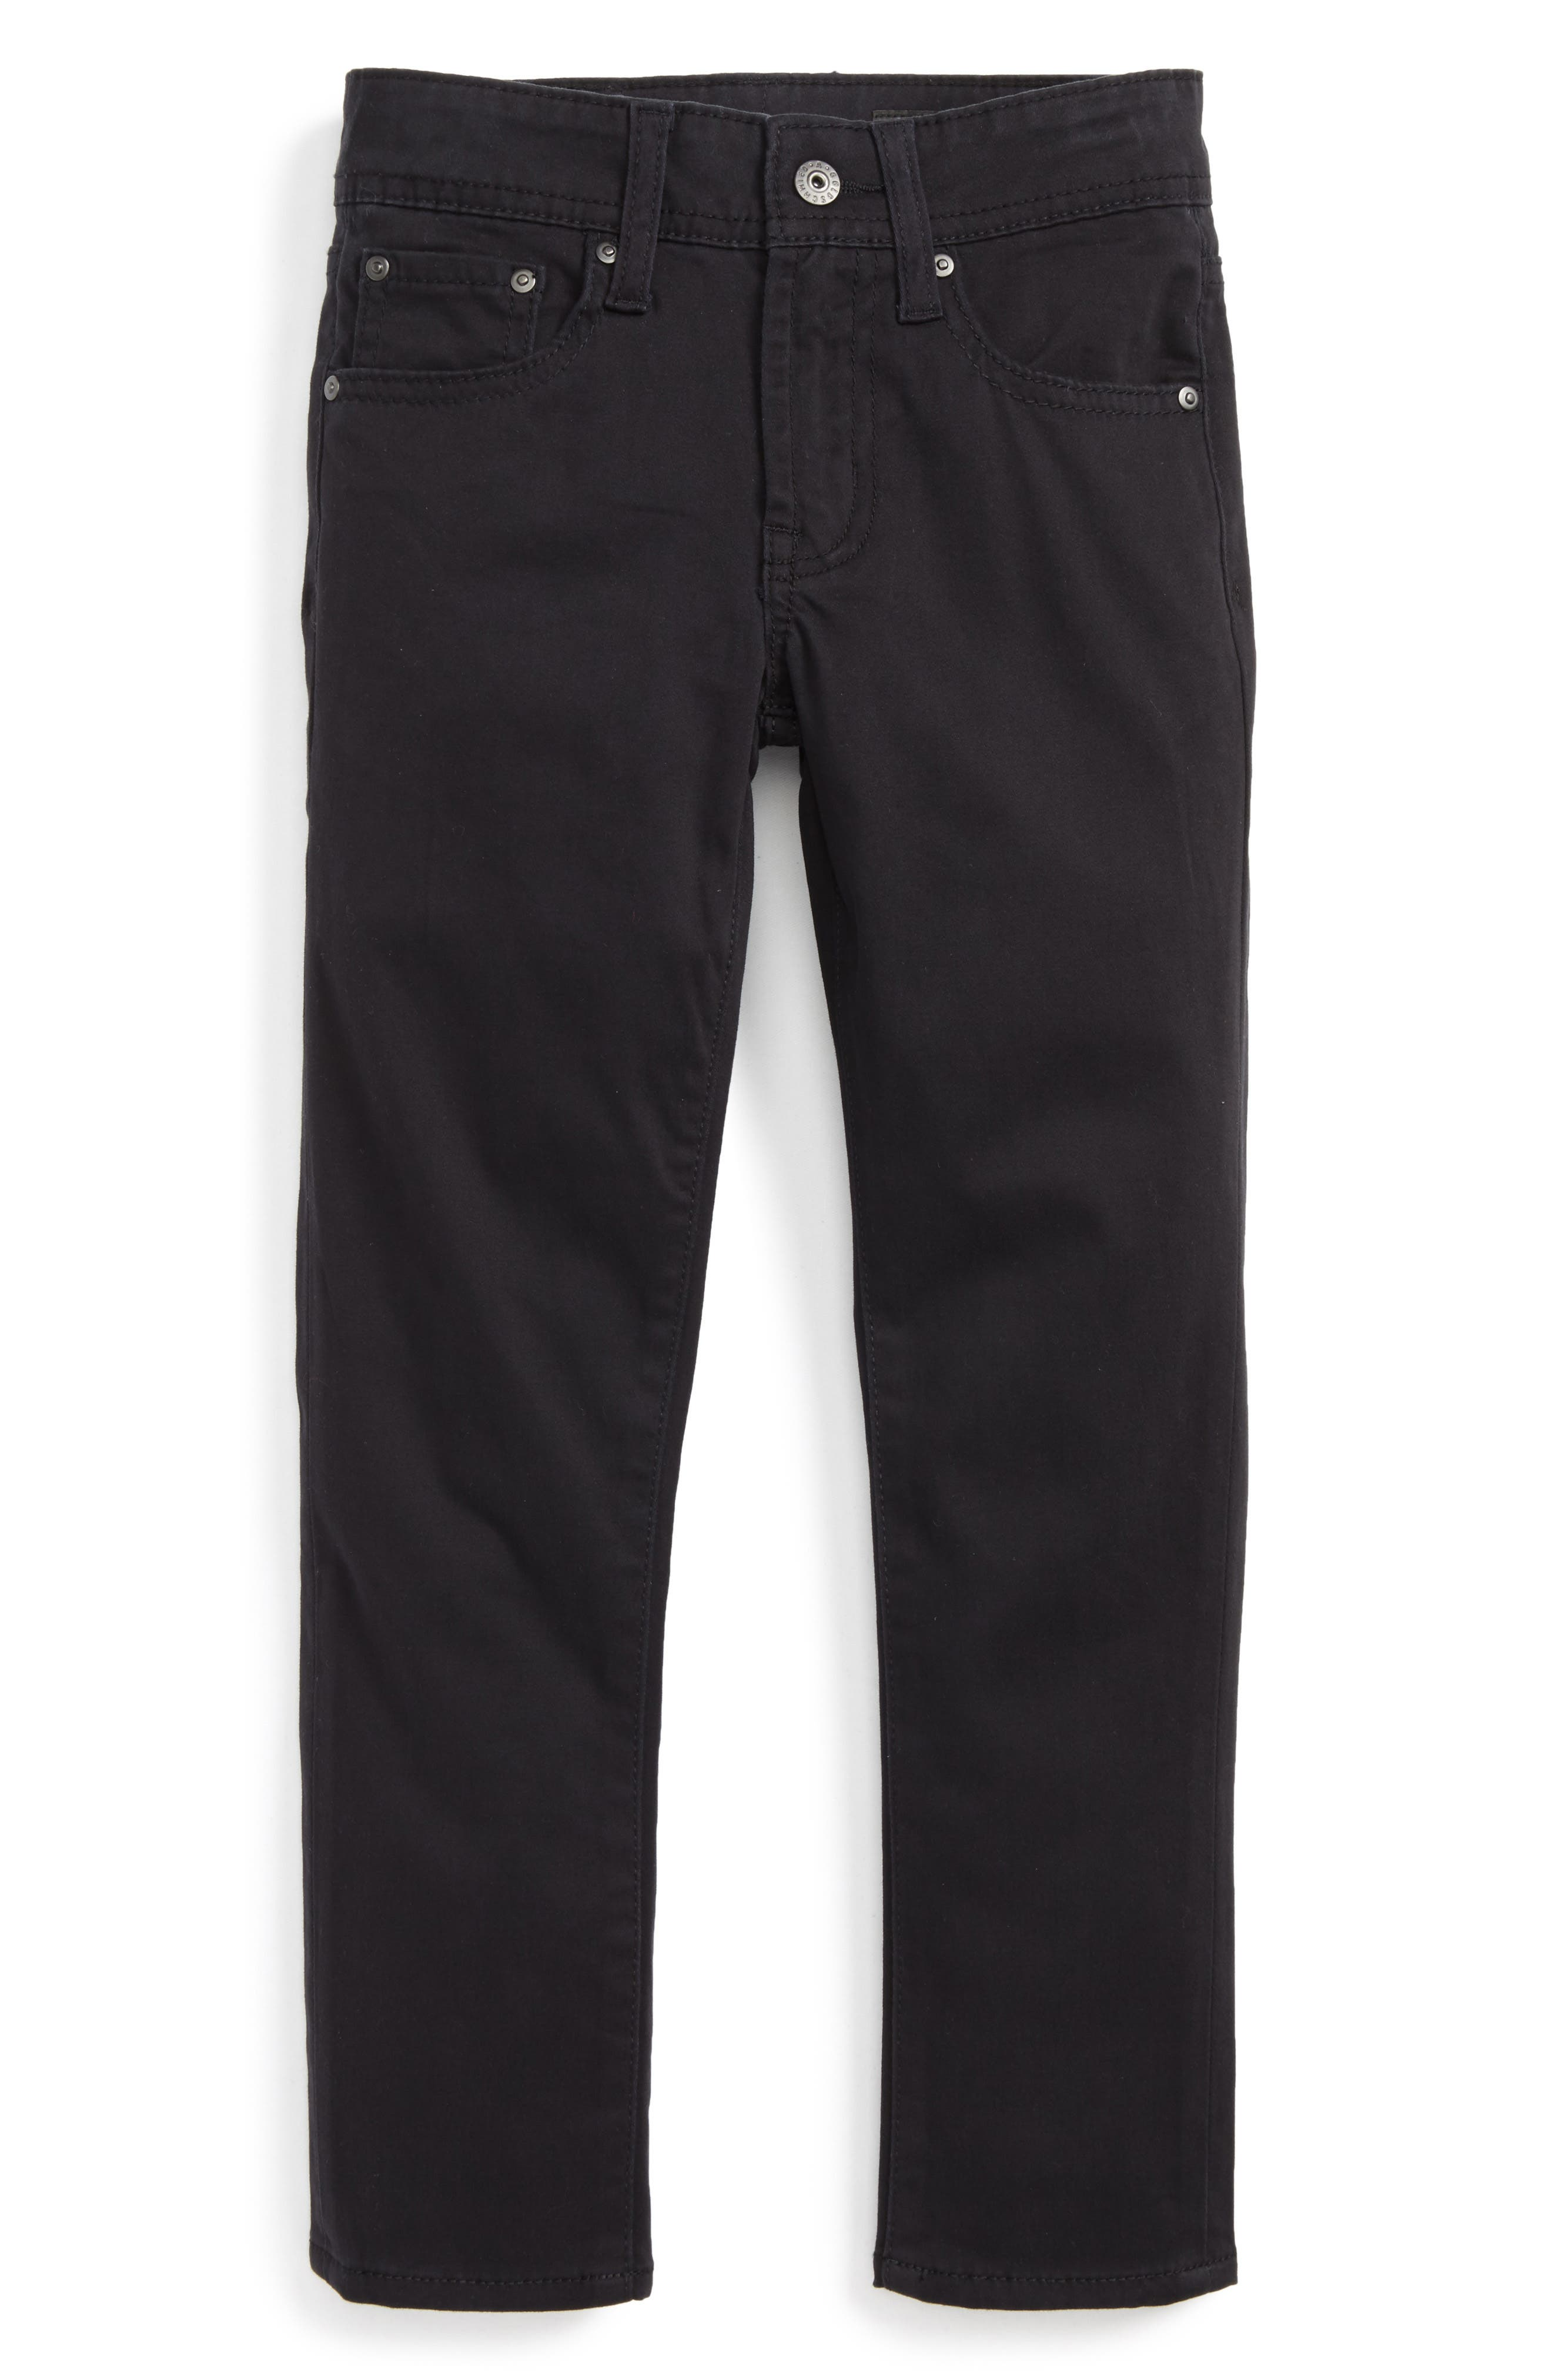 AG The Stryker Luxe Slim Straight Leg Jeans (Toddler Boys, Little Boys & Big Boys)